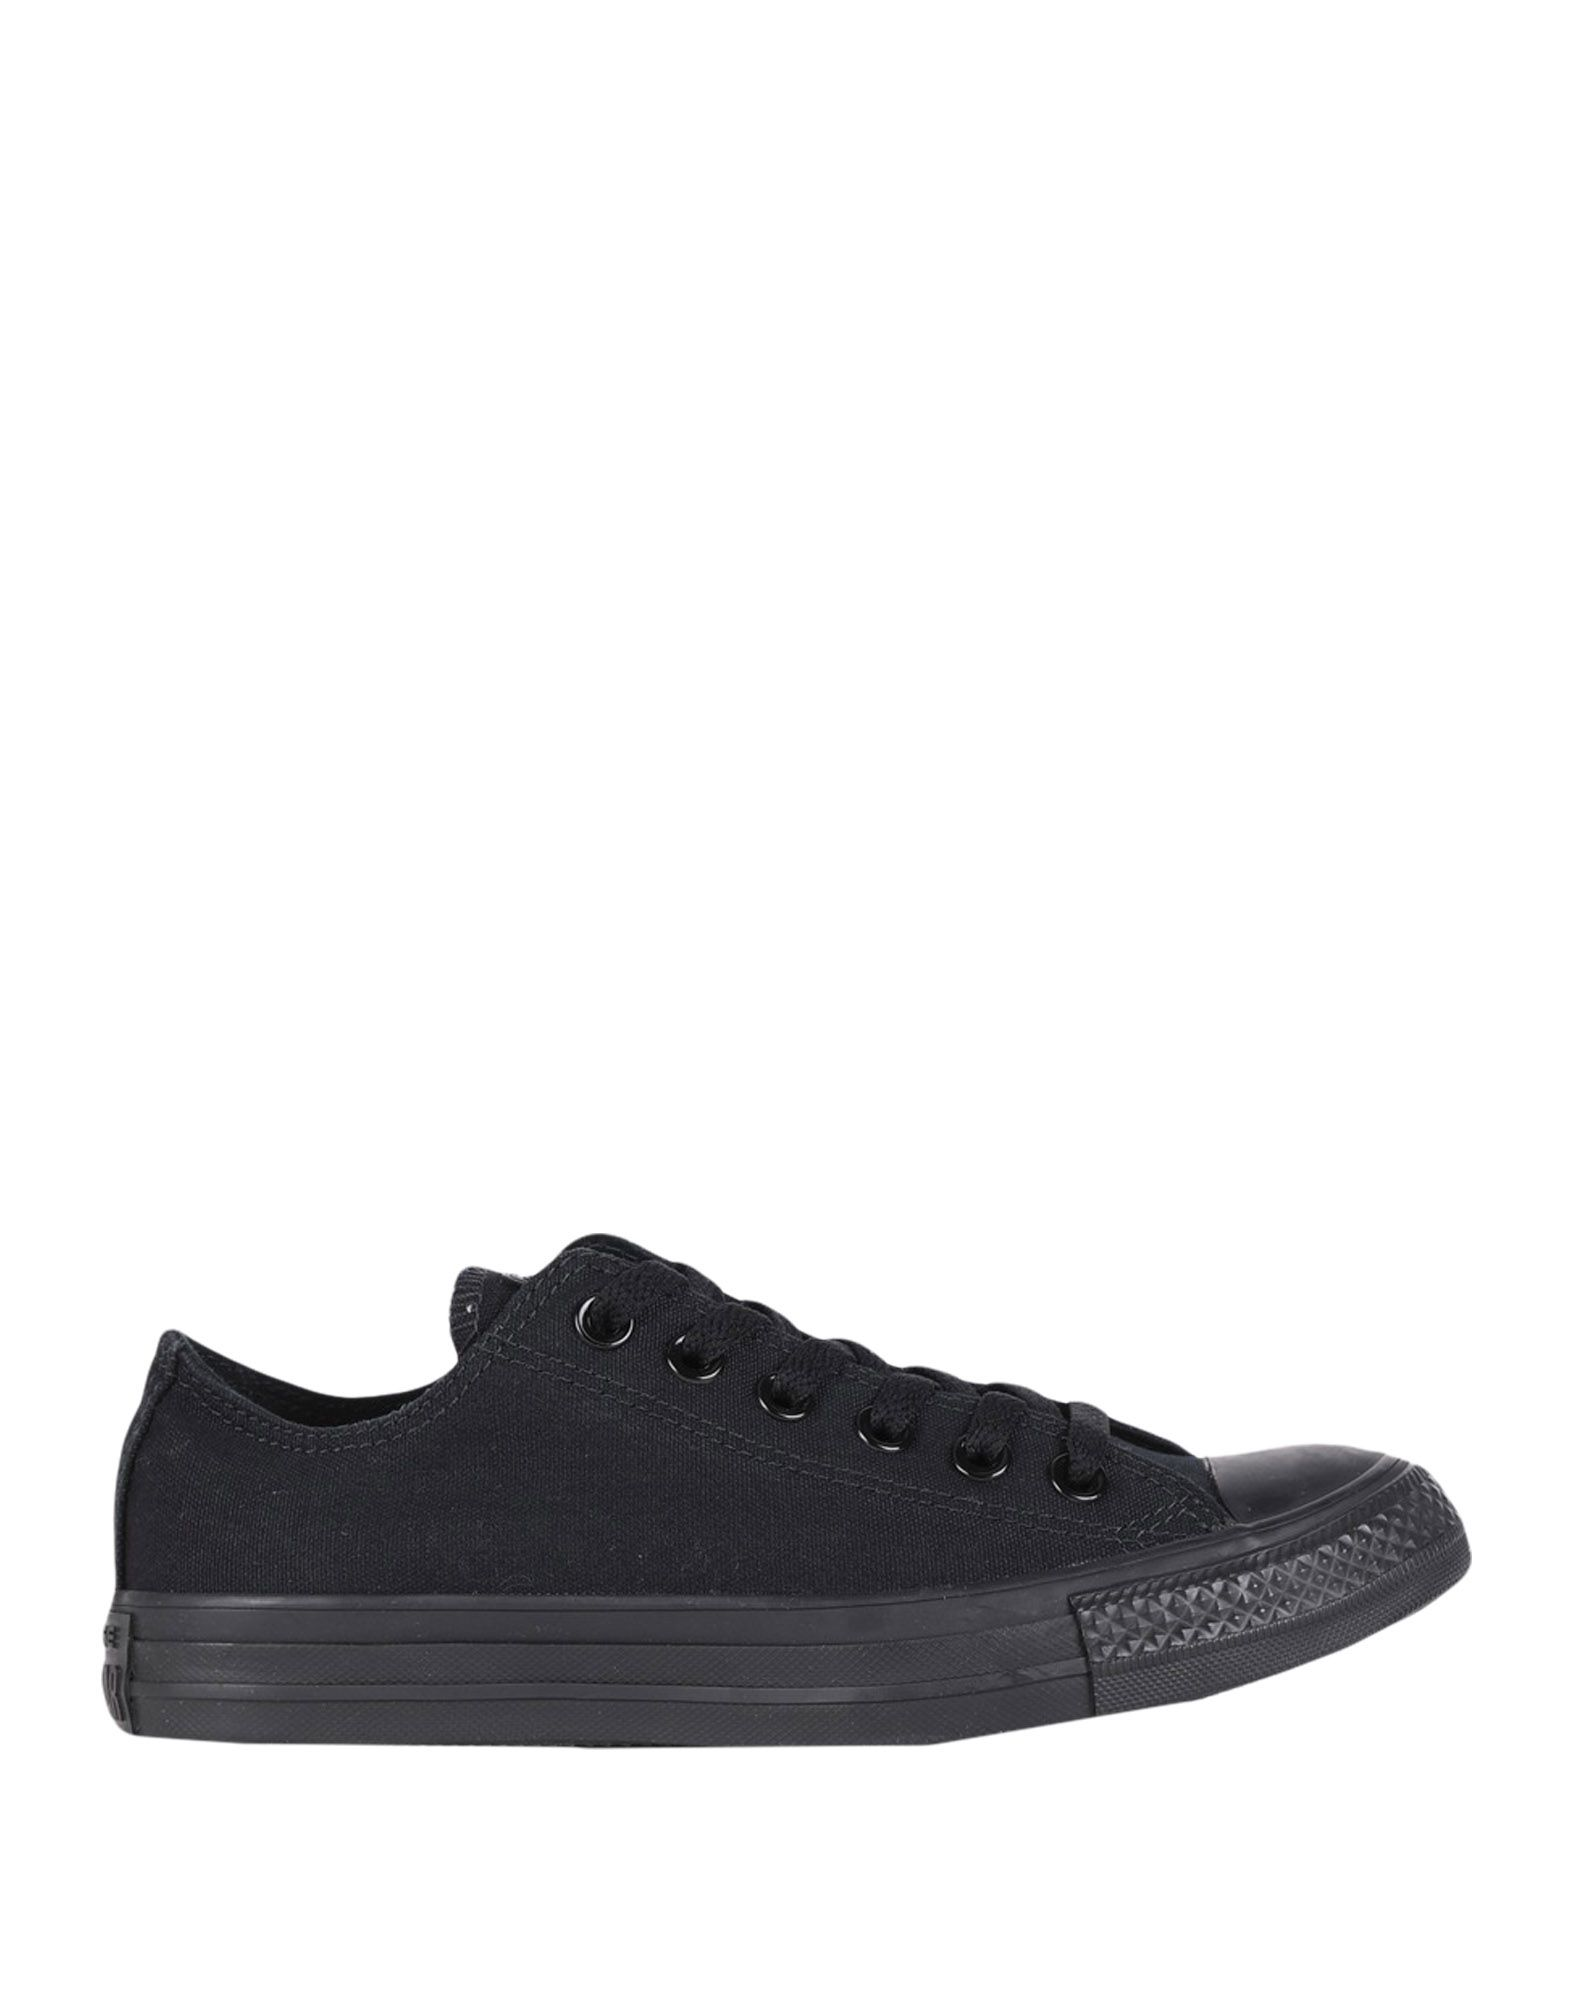 Baskets Converse All Star C Taylor A/S - Femme - Baskets Converse All Star Noir Dédouanement saisonnier